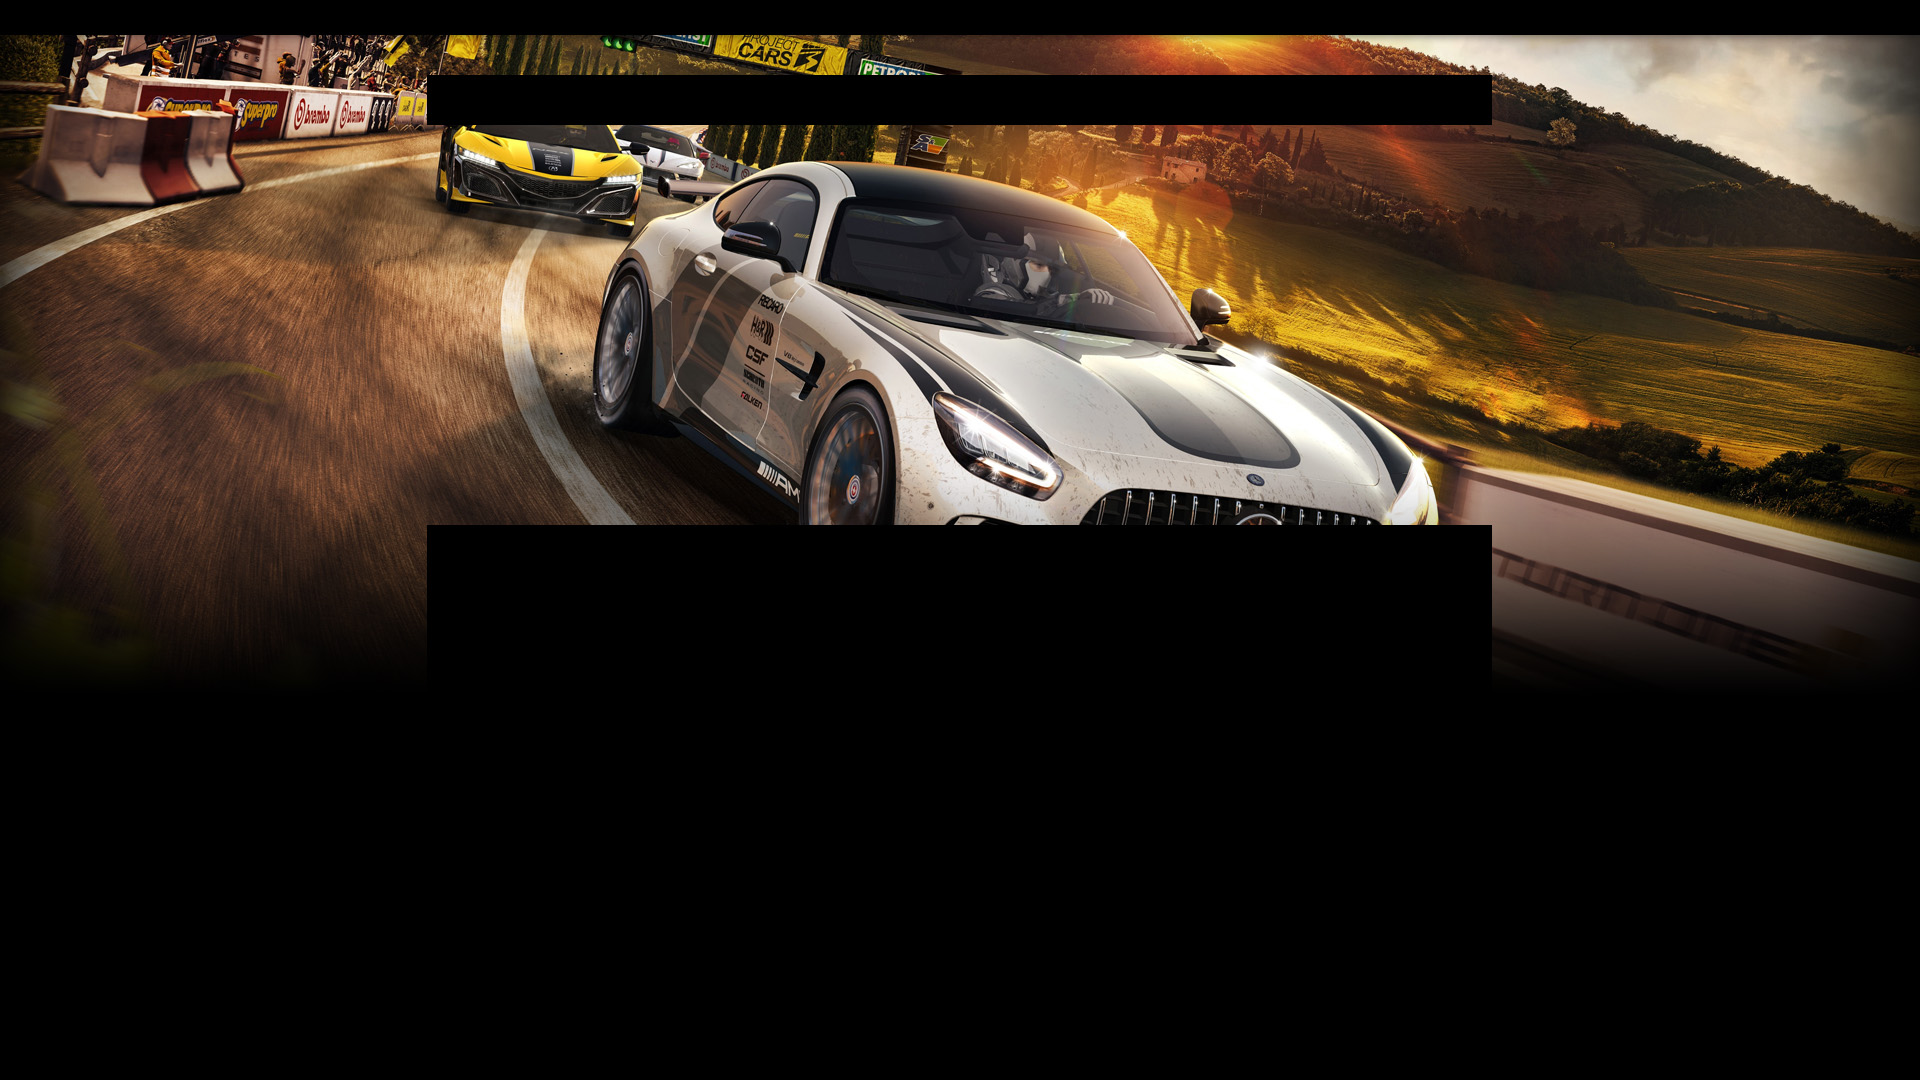 Project Cars 3 [PC, Xbox One, PS4] video game